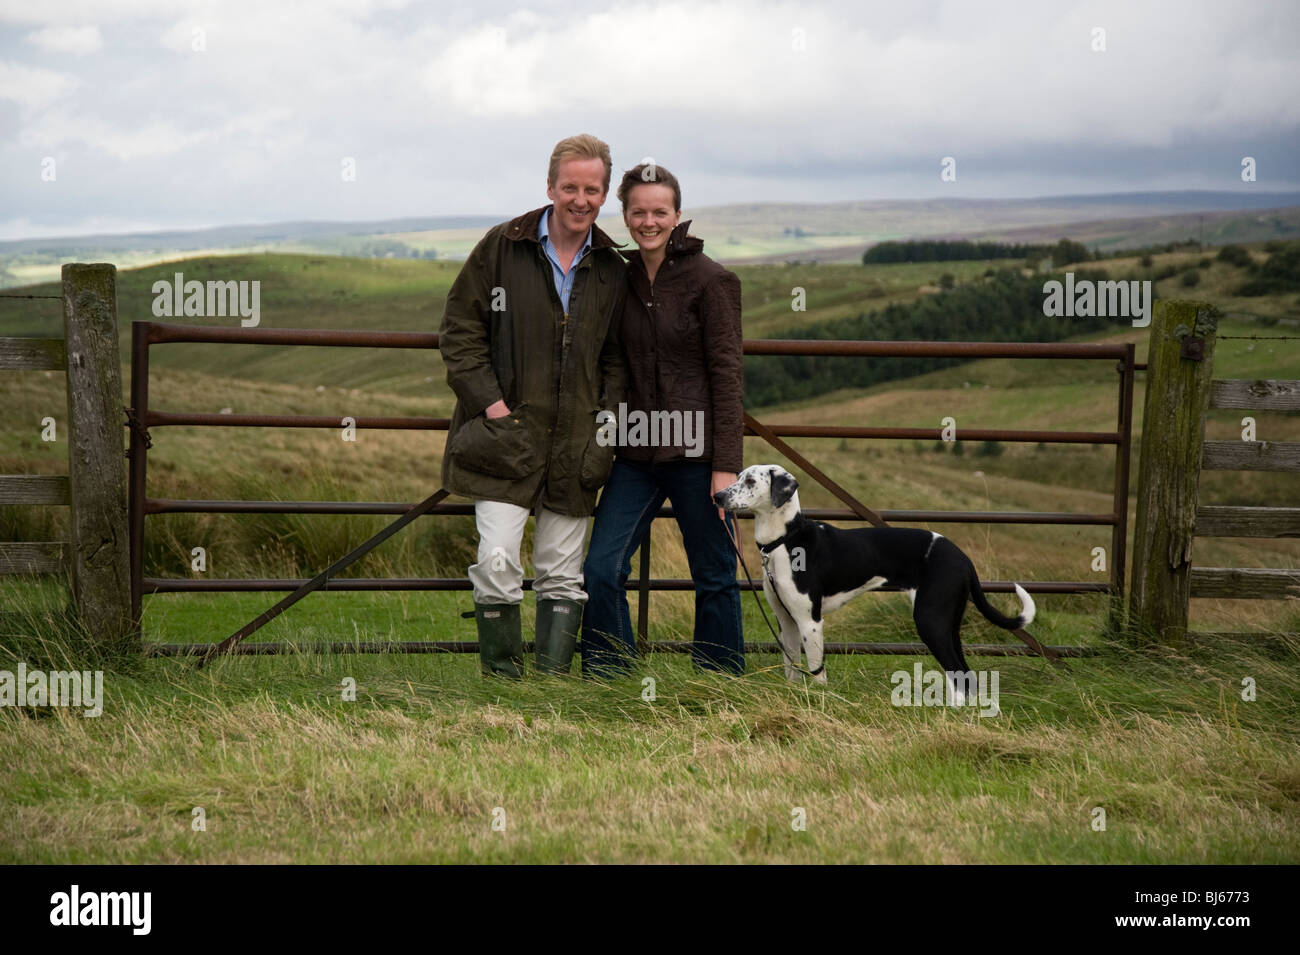 Married couple with pet dog enjoying their country lifestyle, Cumbria, uk - Stock Image